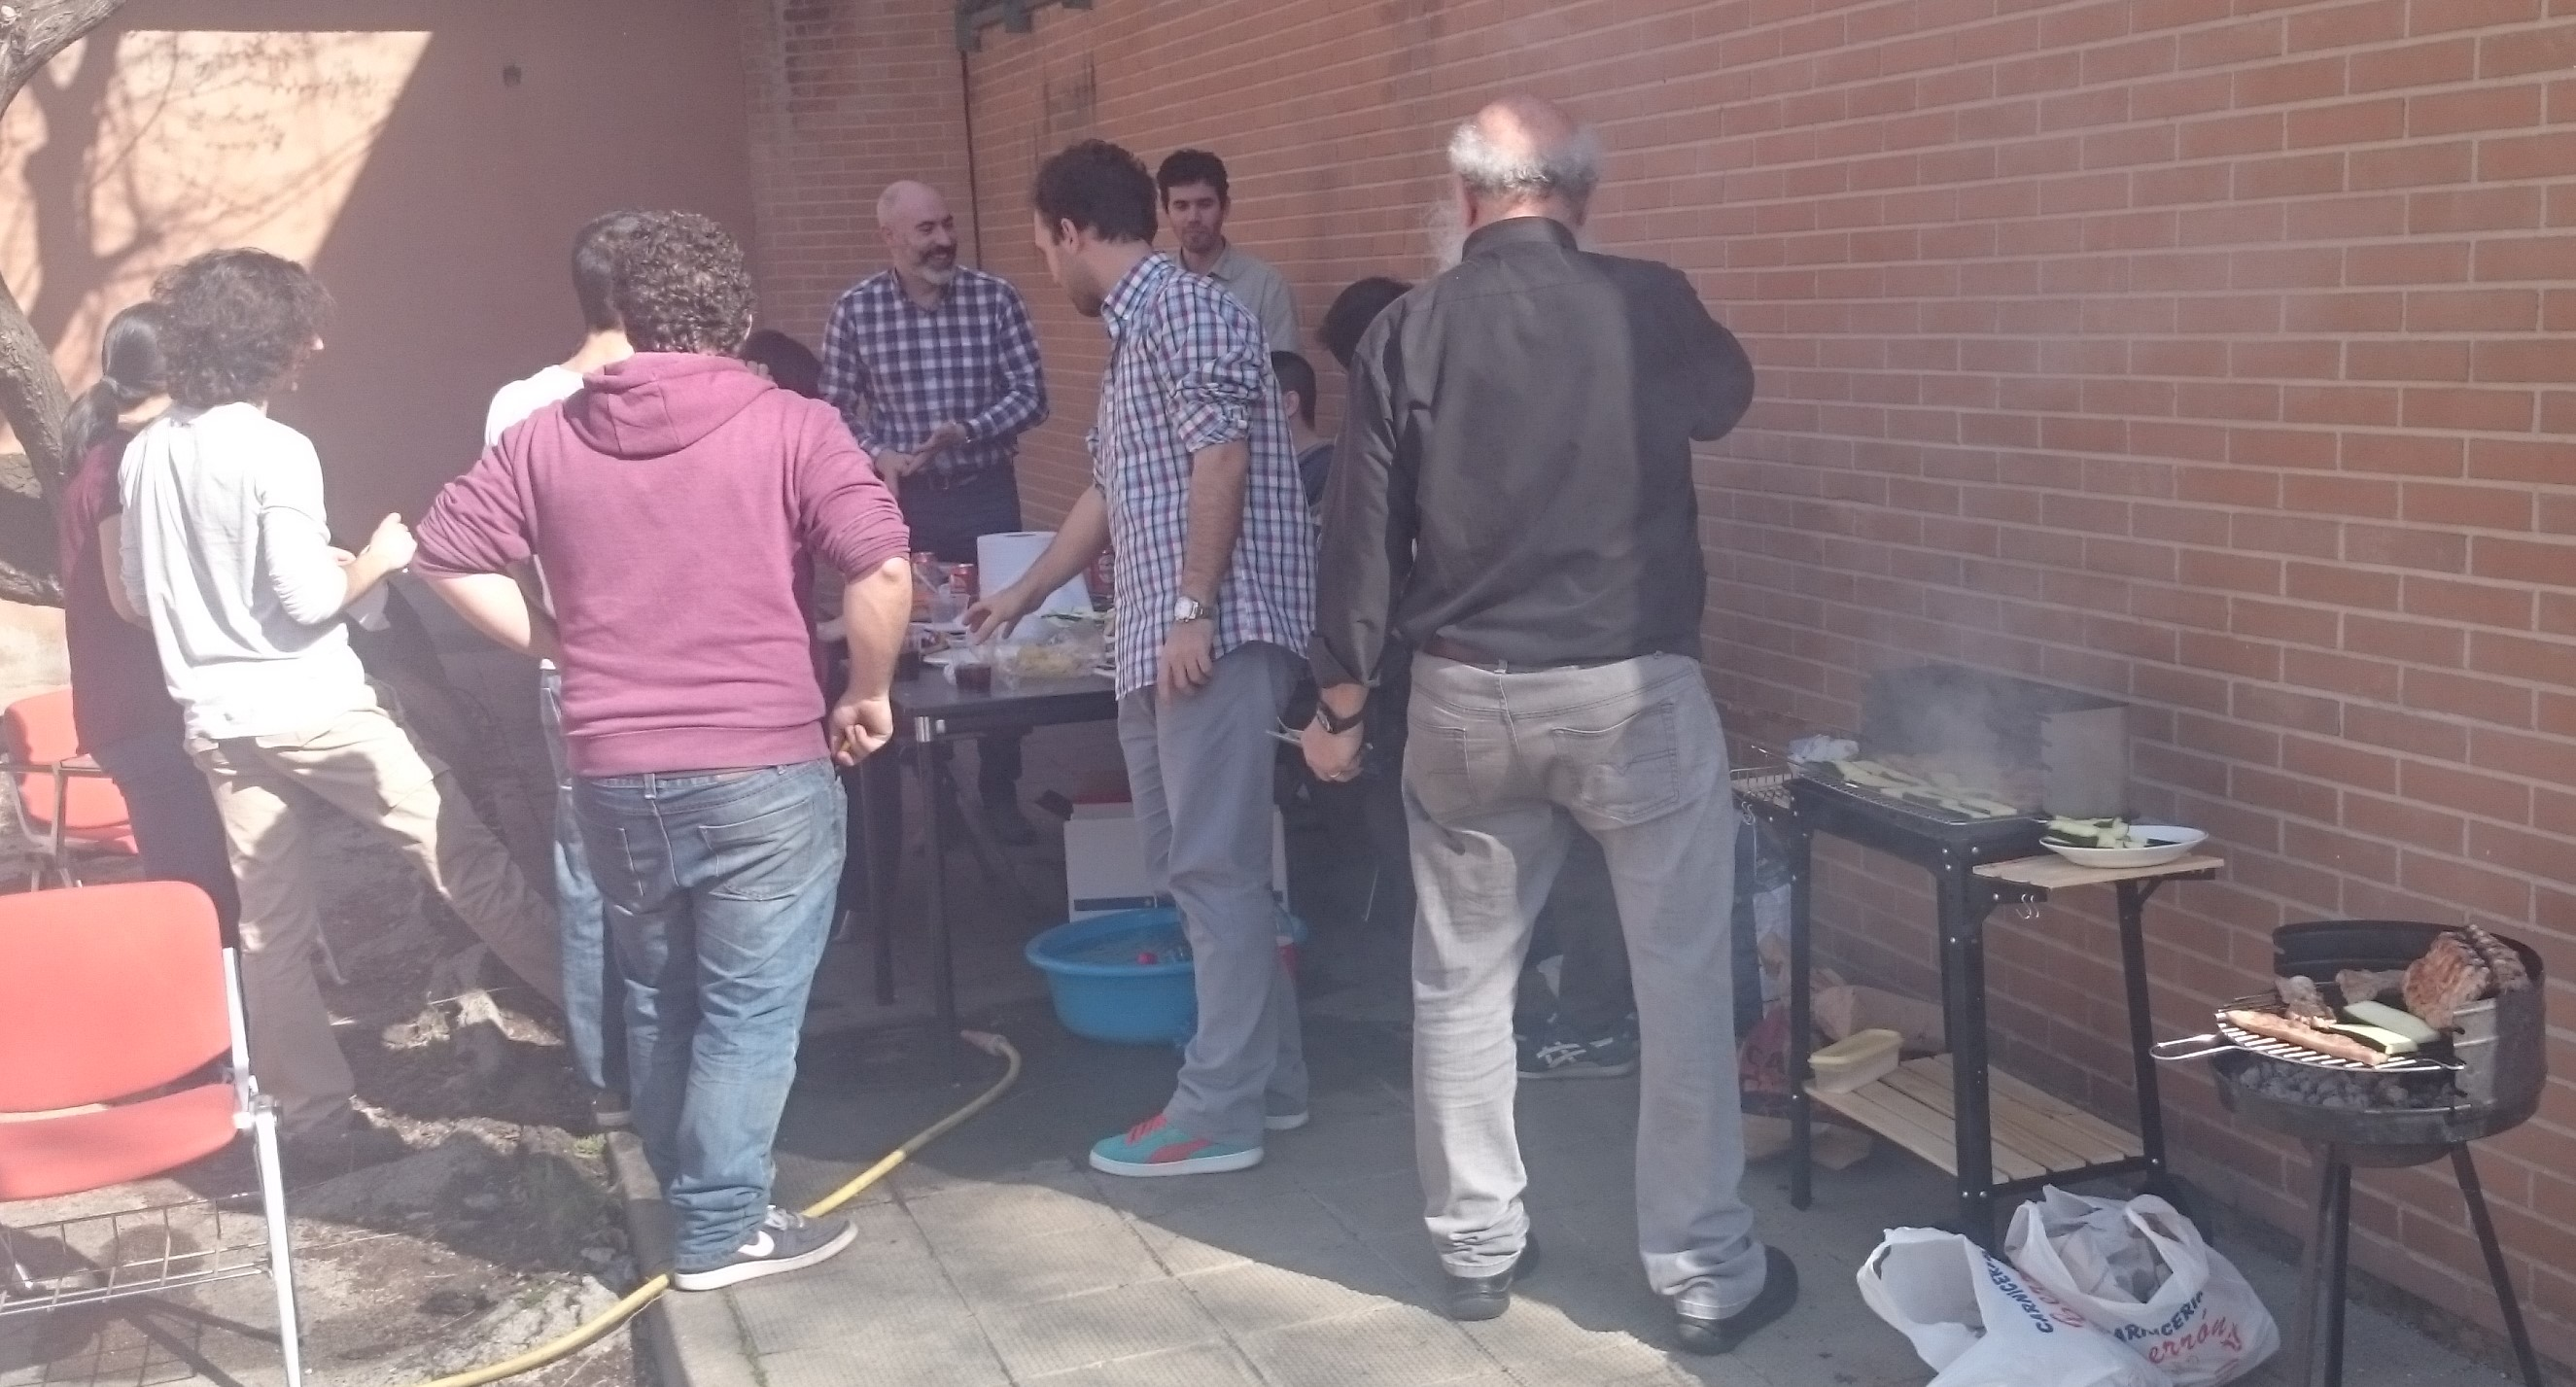 08/03/2017 - Barbecue to celebrate the presentation of CHRISTIE project and the success of the last group of students with the TFG